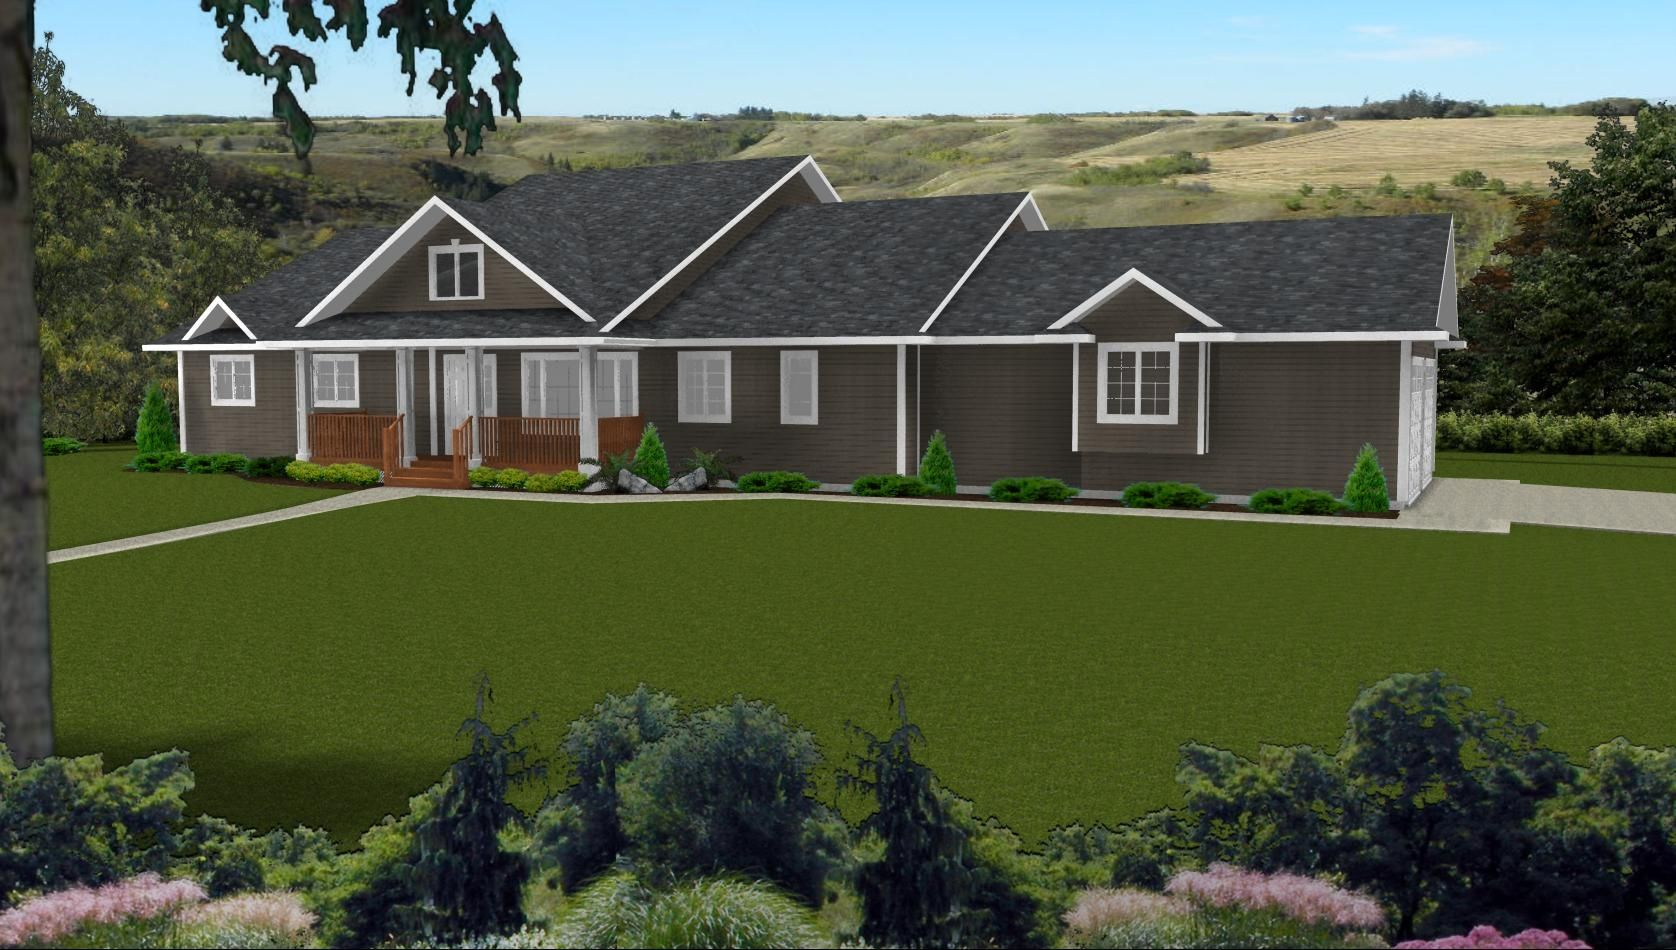 Simple Ranch Style House Plans With Walkout Basement ...